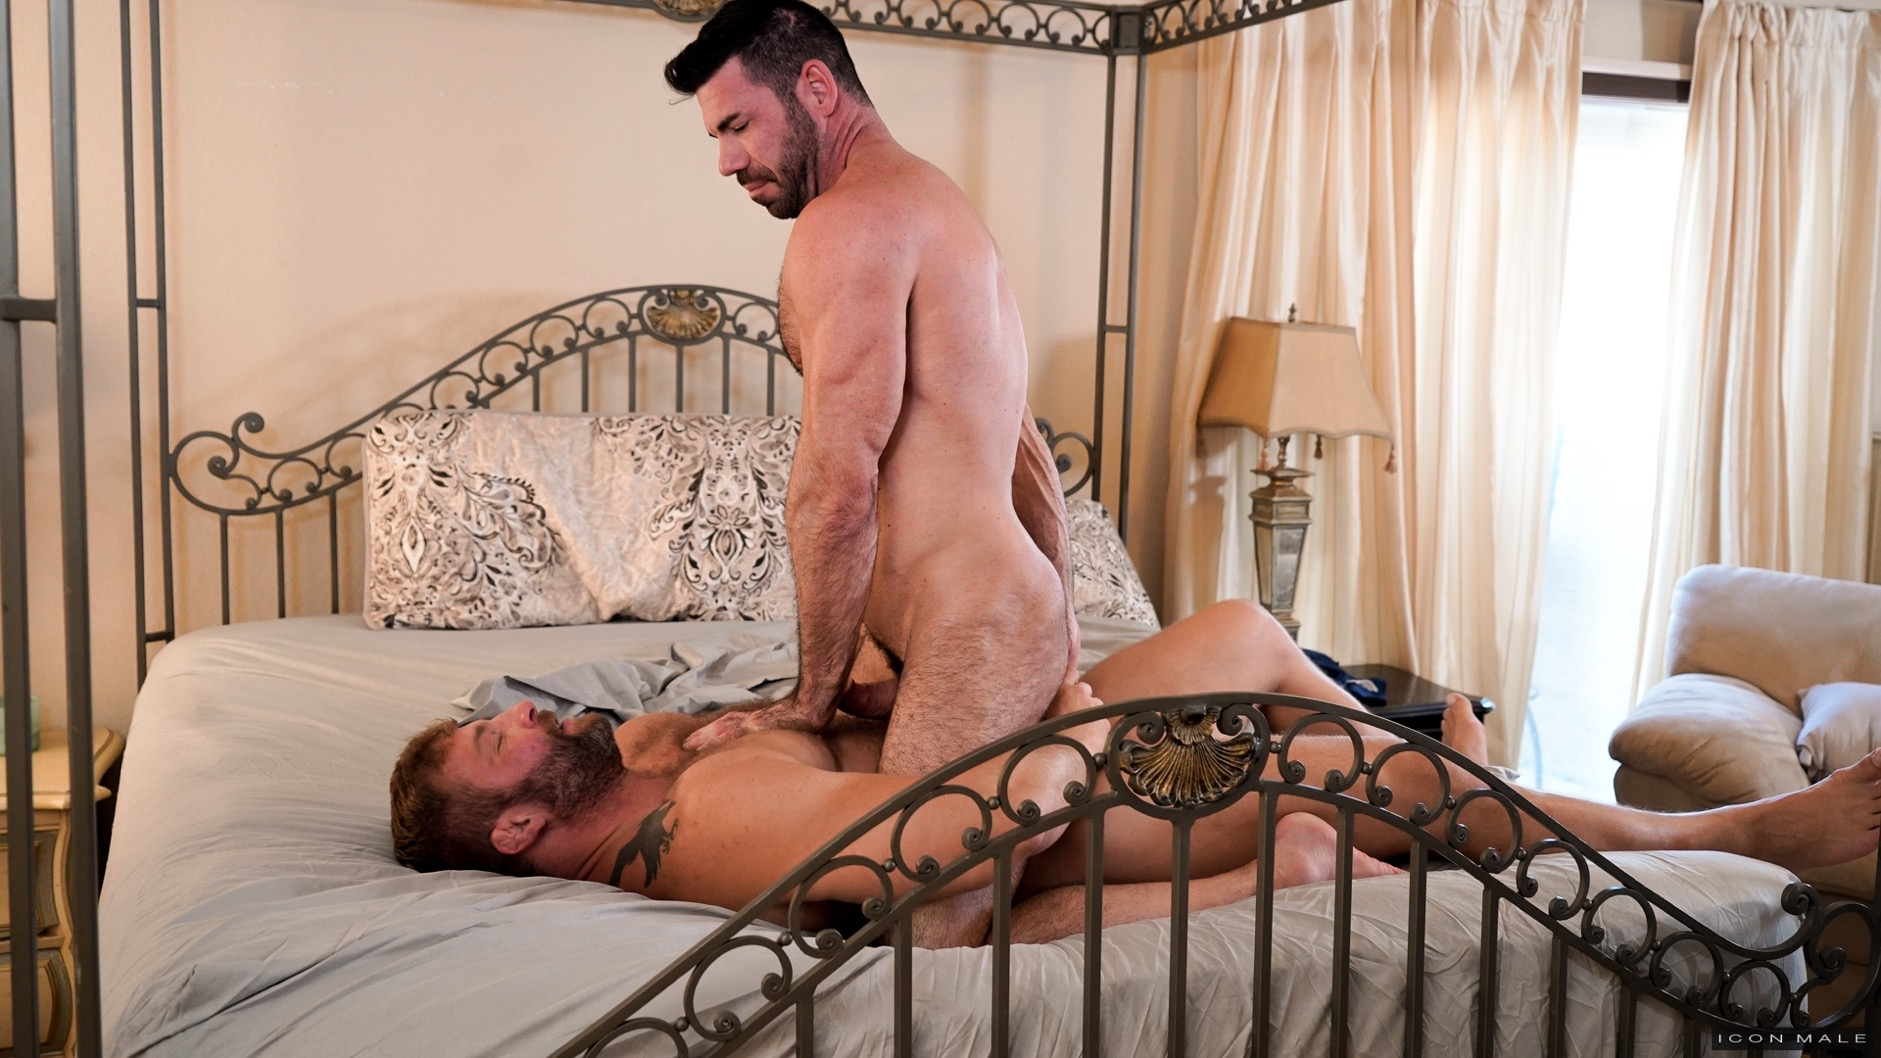 Colby Jansen fucks billy santoro